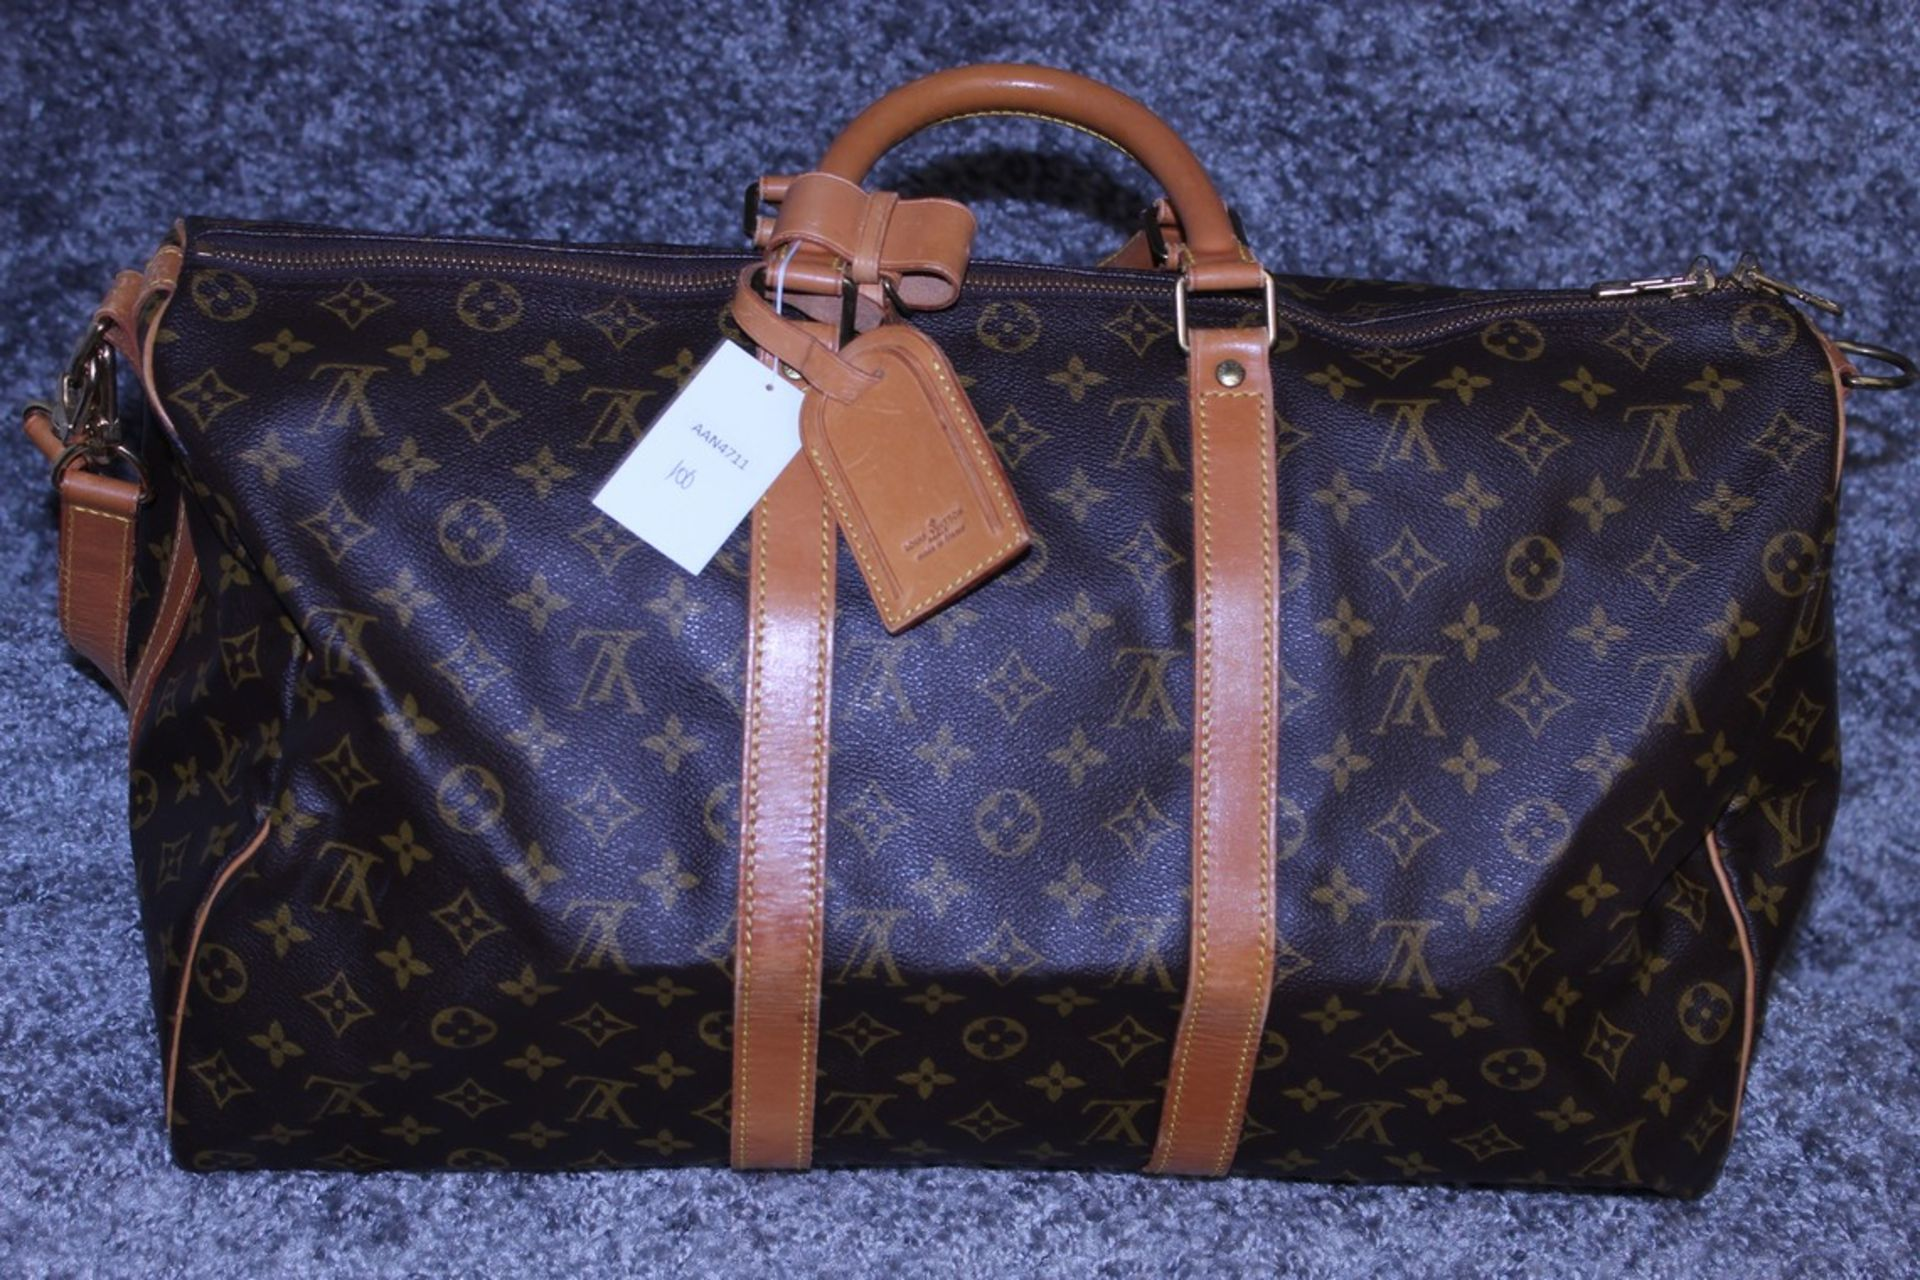 RRP 2,000 Louis Vuitton Keepall 50 Bandouliere Shoulder Bag, Brown Coated Canvas Monogram, - Image 2 of 3